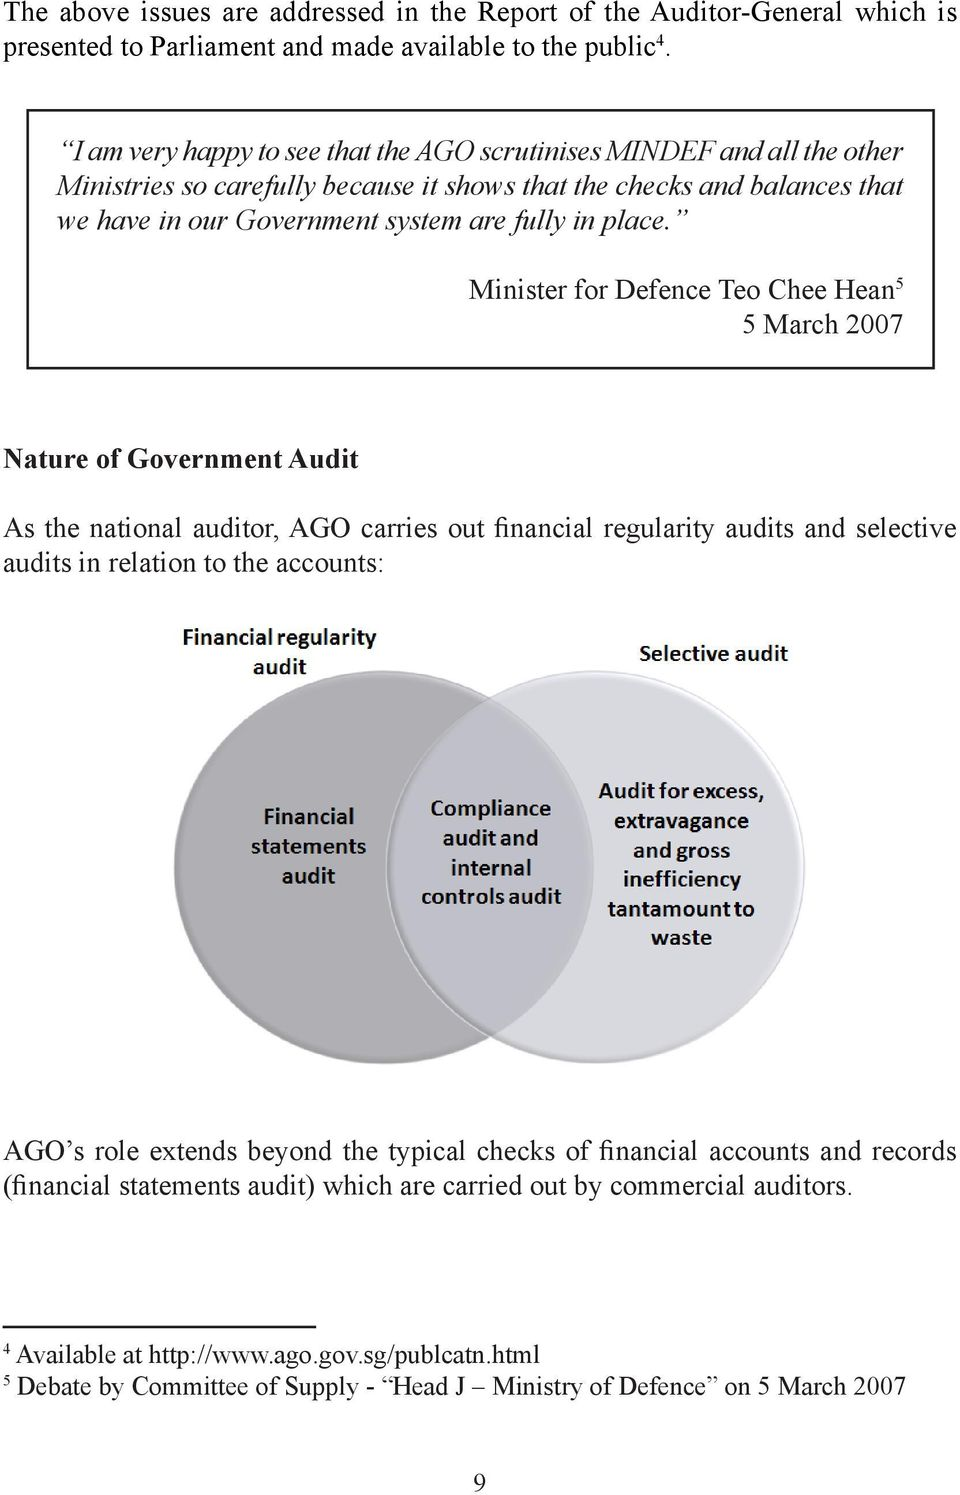 Minister for Defence Teo Chee Hean 5 5 March 2007 Nature of Government Audit As the national auditor, AGO carries out financial regularity audits and selective audits in relation to the accounts: AGO